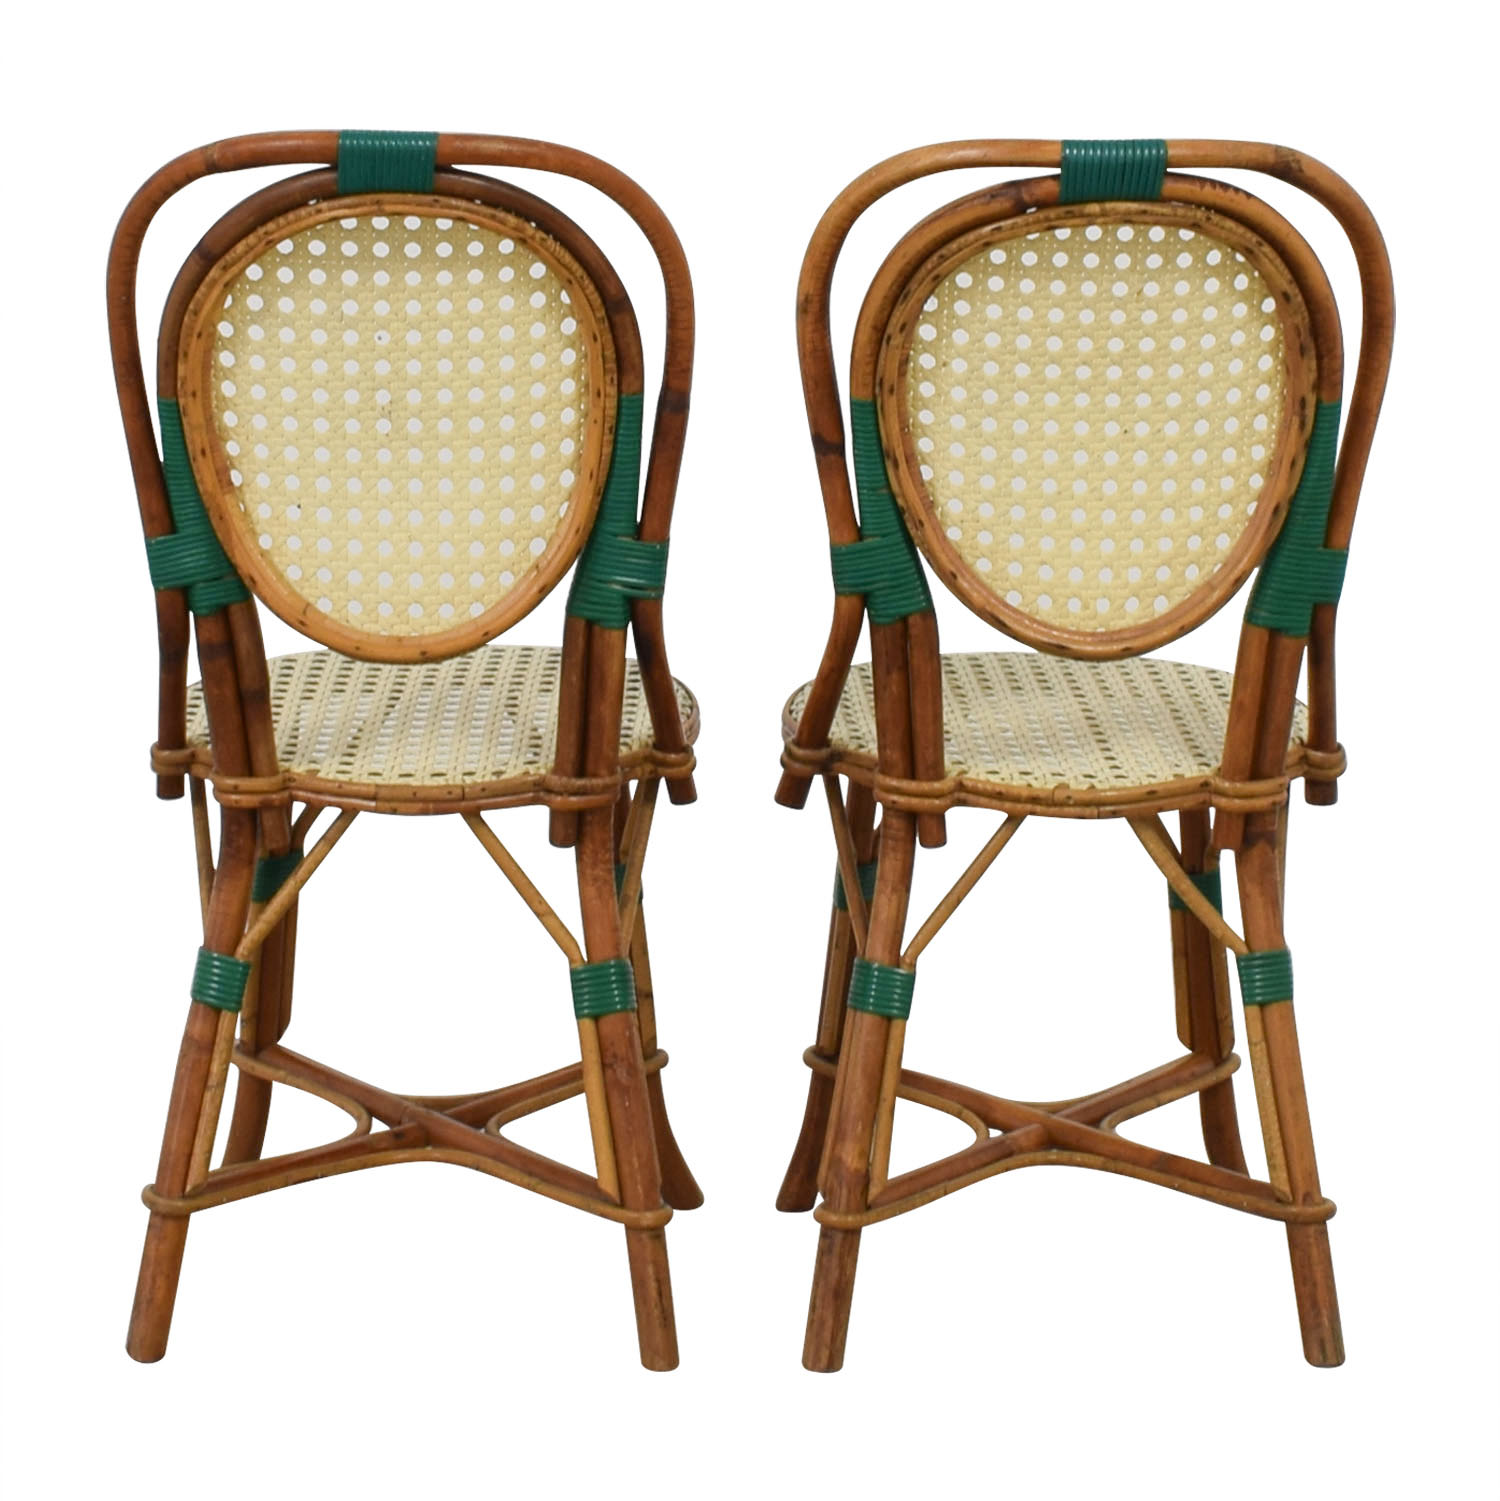 Genuine Vintage Cane French Bistro Chairs discount